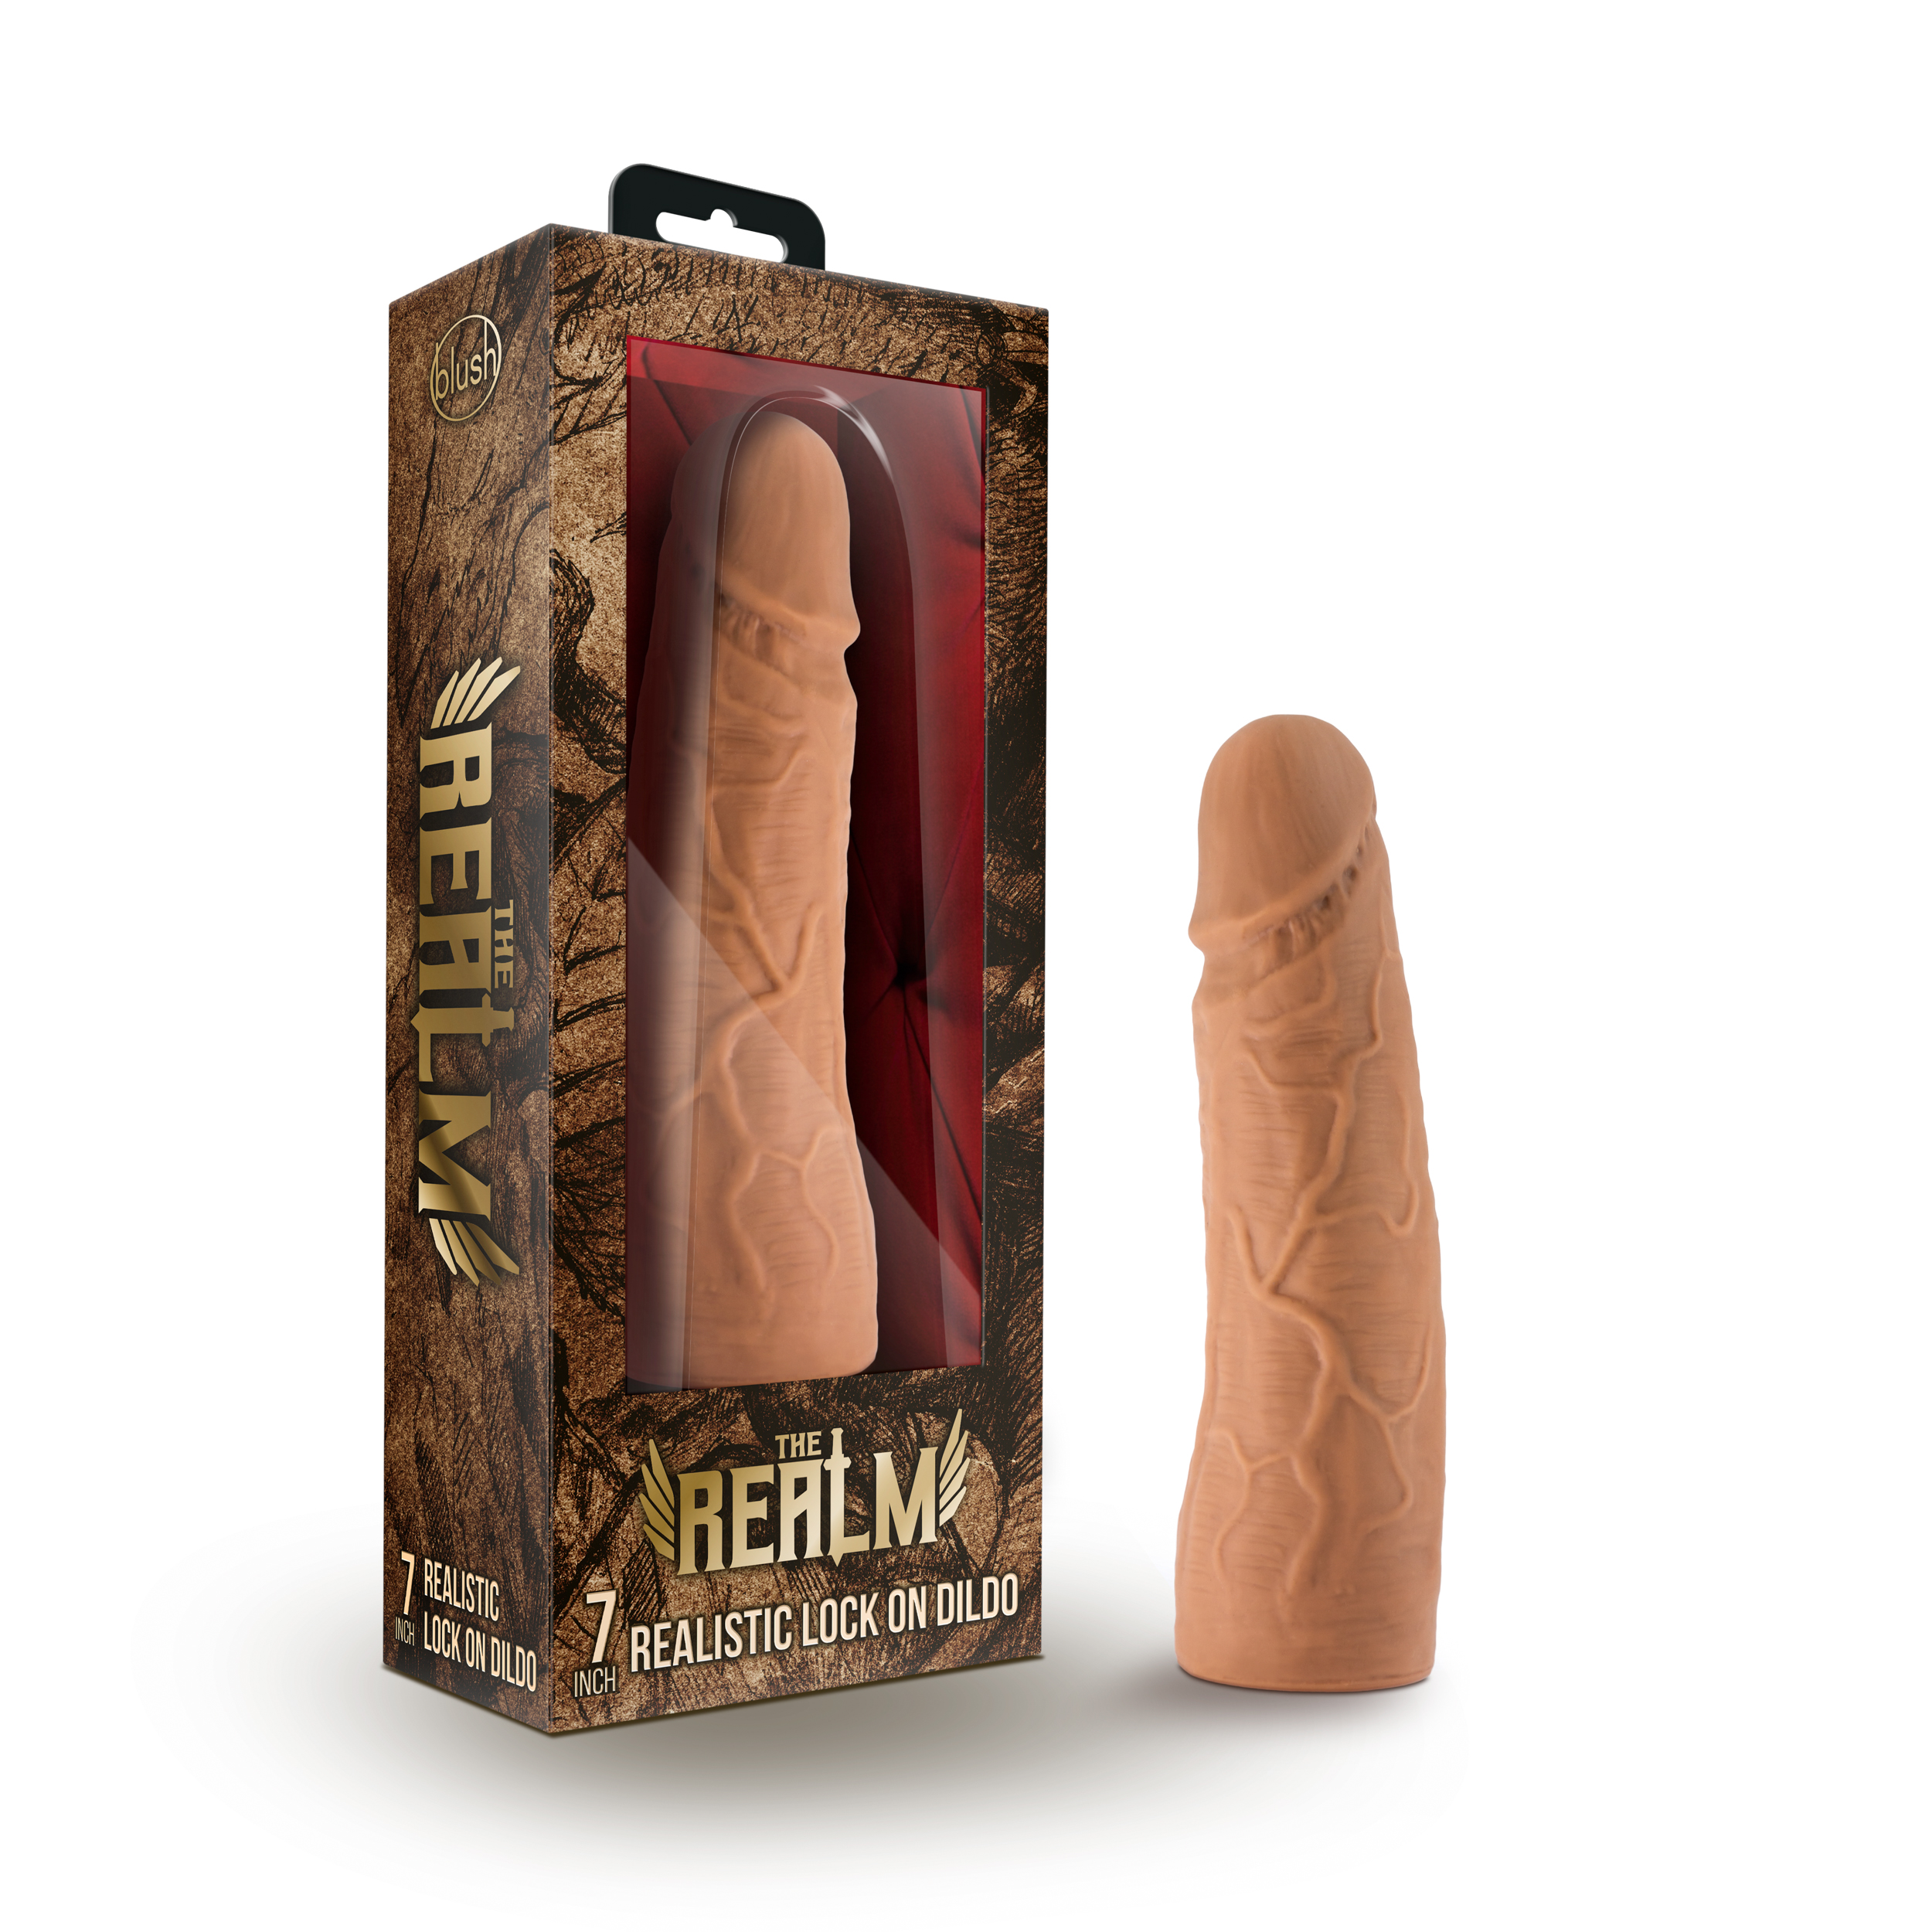 The Realm - Realistic 7 Inch Lock On Dildo - Mocha